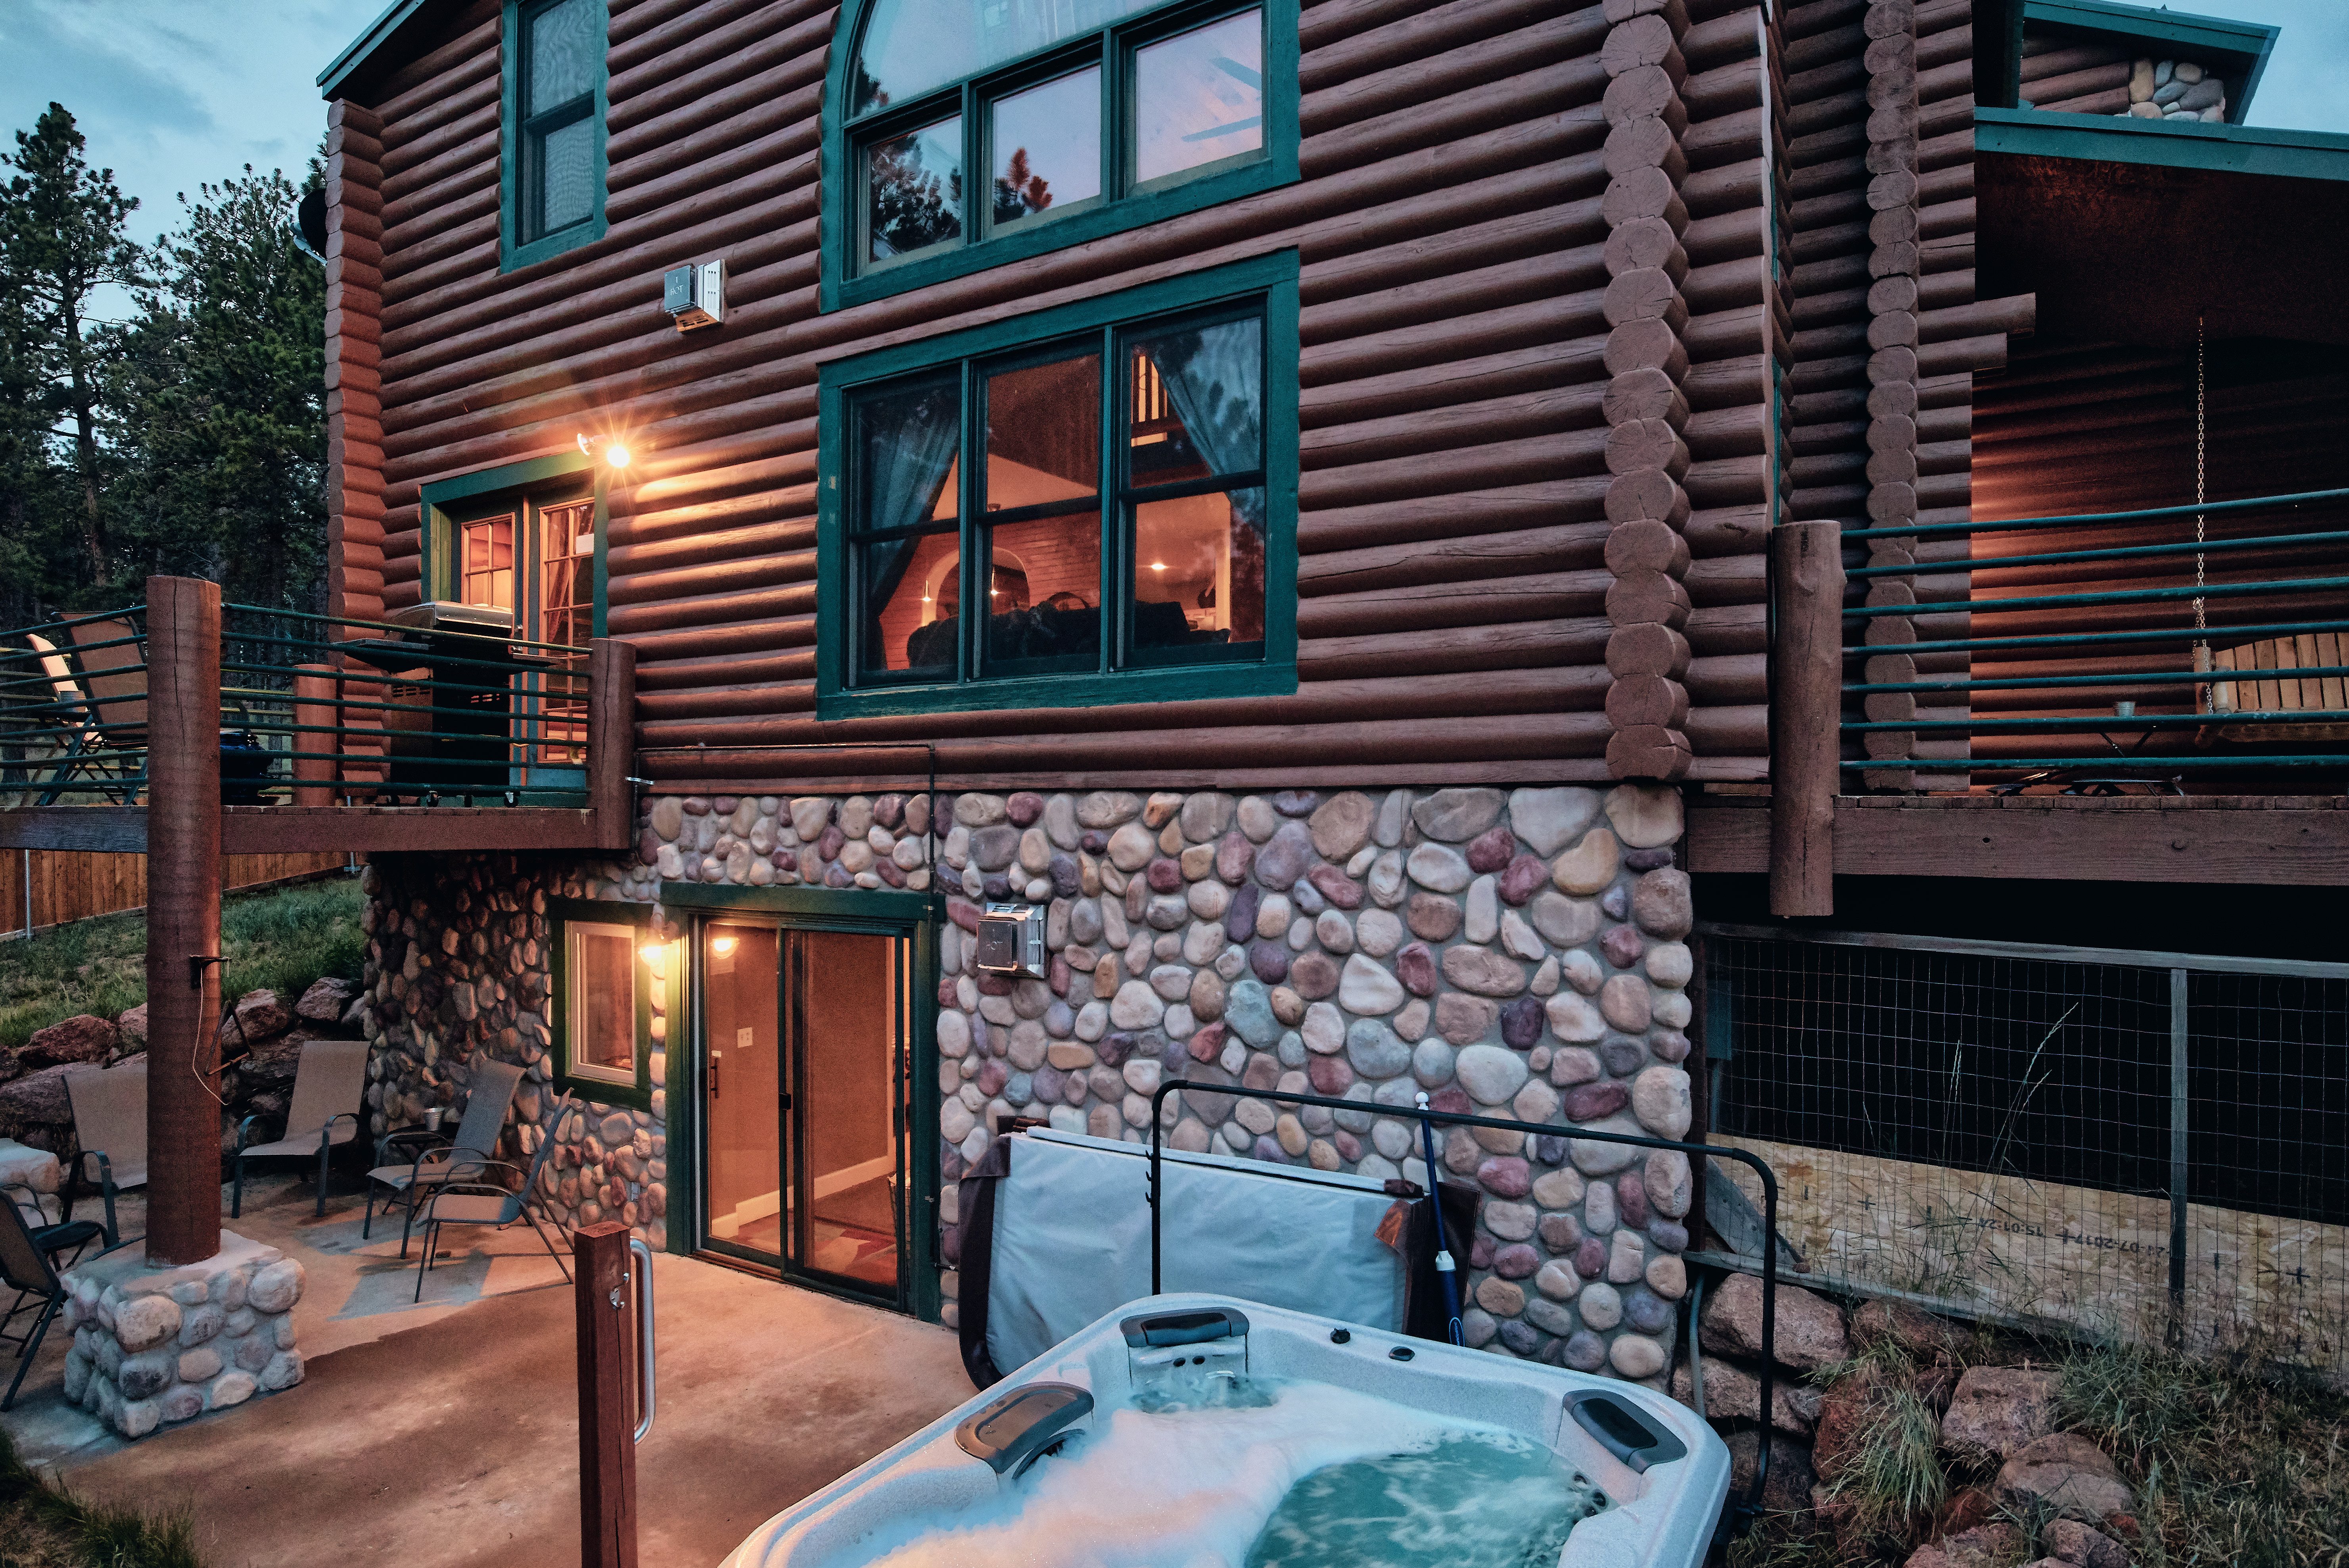 The hot tub and patio are around the side of the house.